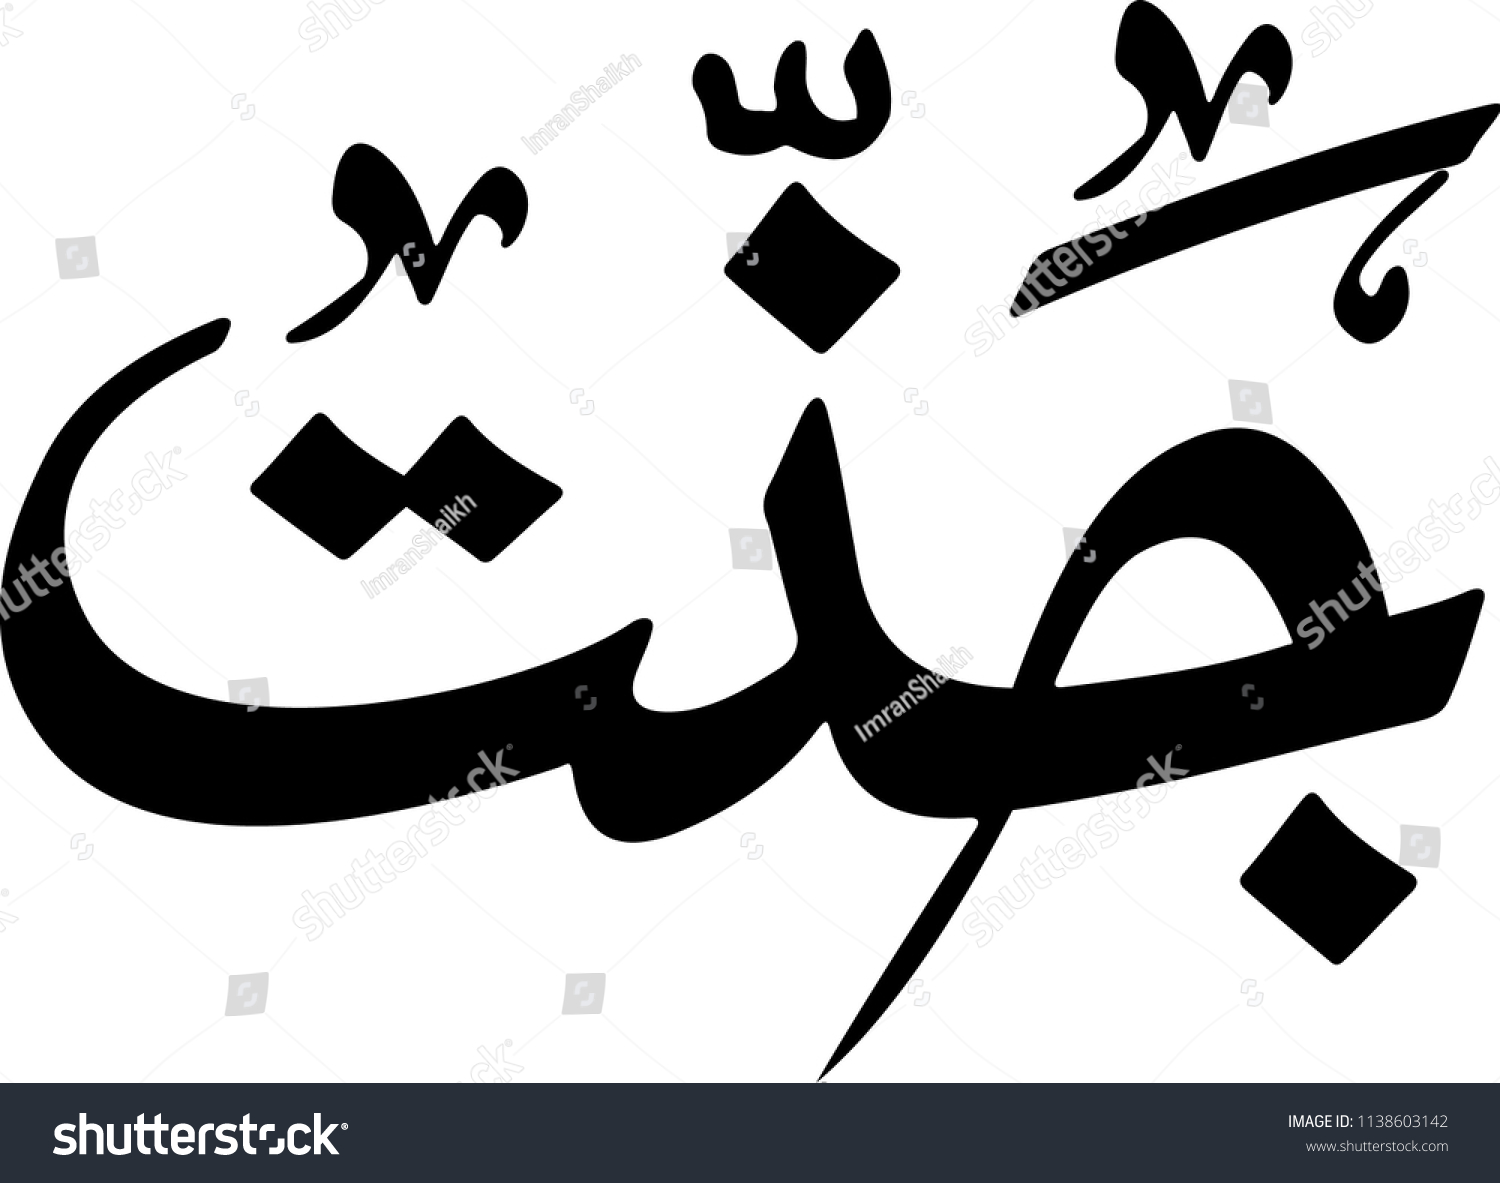 Urdu Calligraphy Font Free Download Jannat Urdu Calligraphy Hand Writing Stock Vector Royalty Free